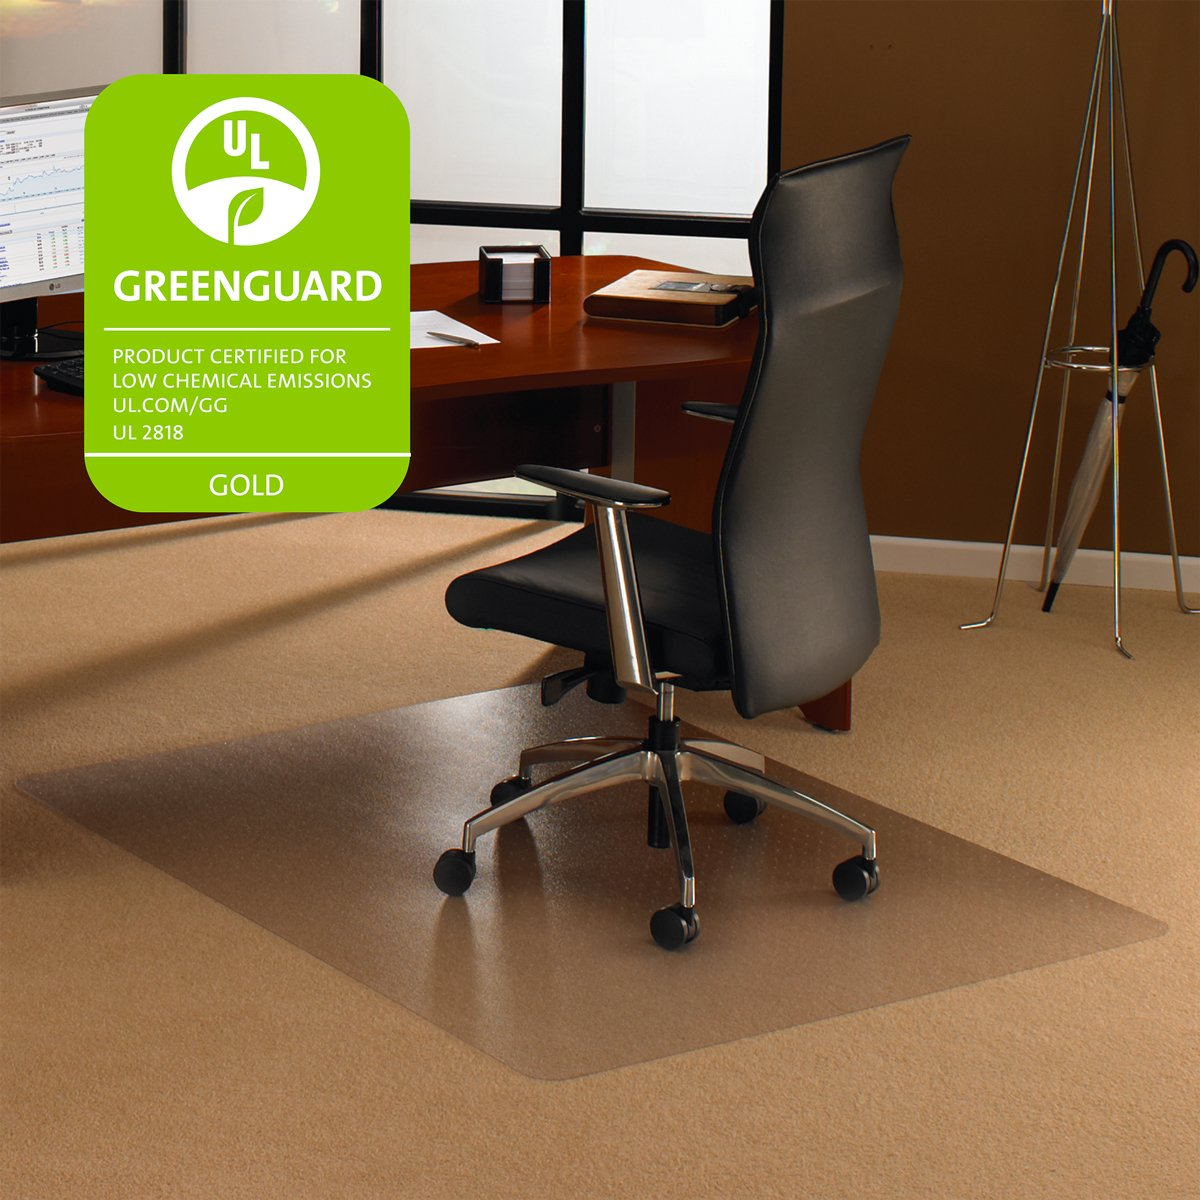 Amazon.com : Cleartex Ultimat Chair Mat, Polycarbonate, For Low ...